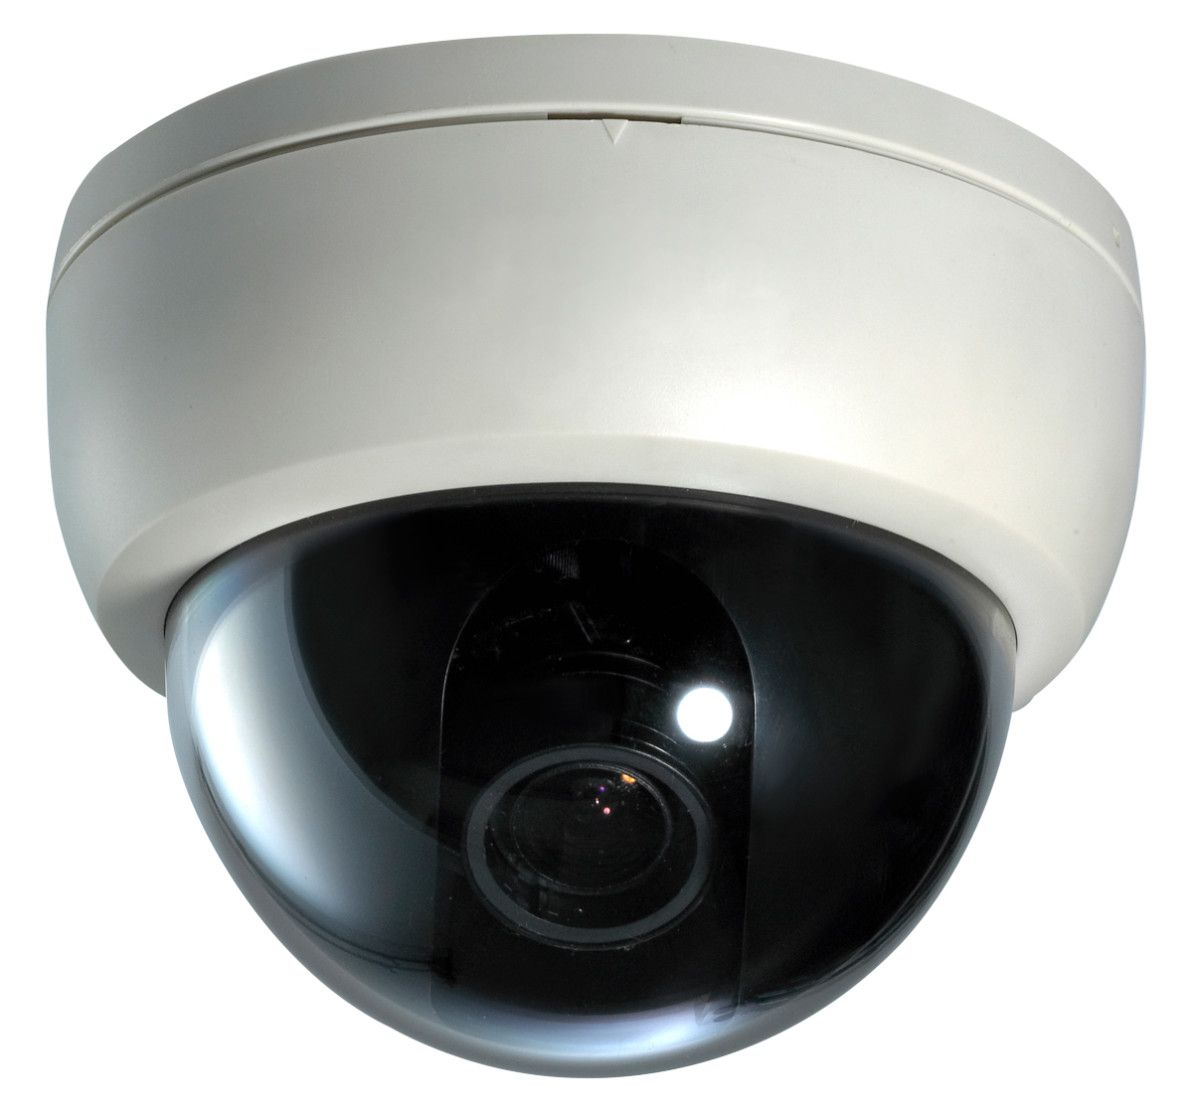 Keep tabs on what's going on in your home or business with an IP CCTV camera